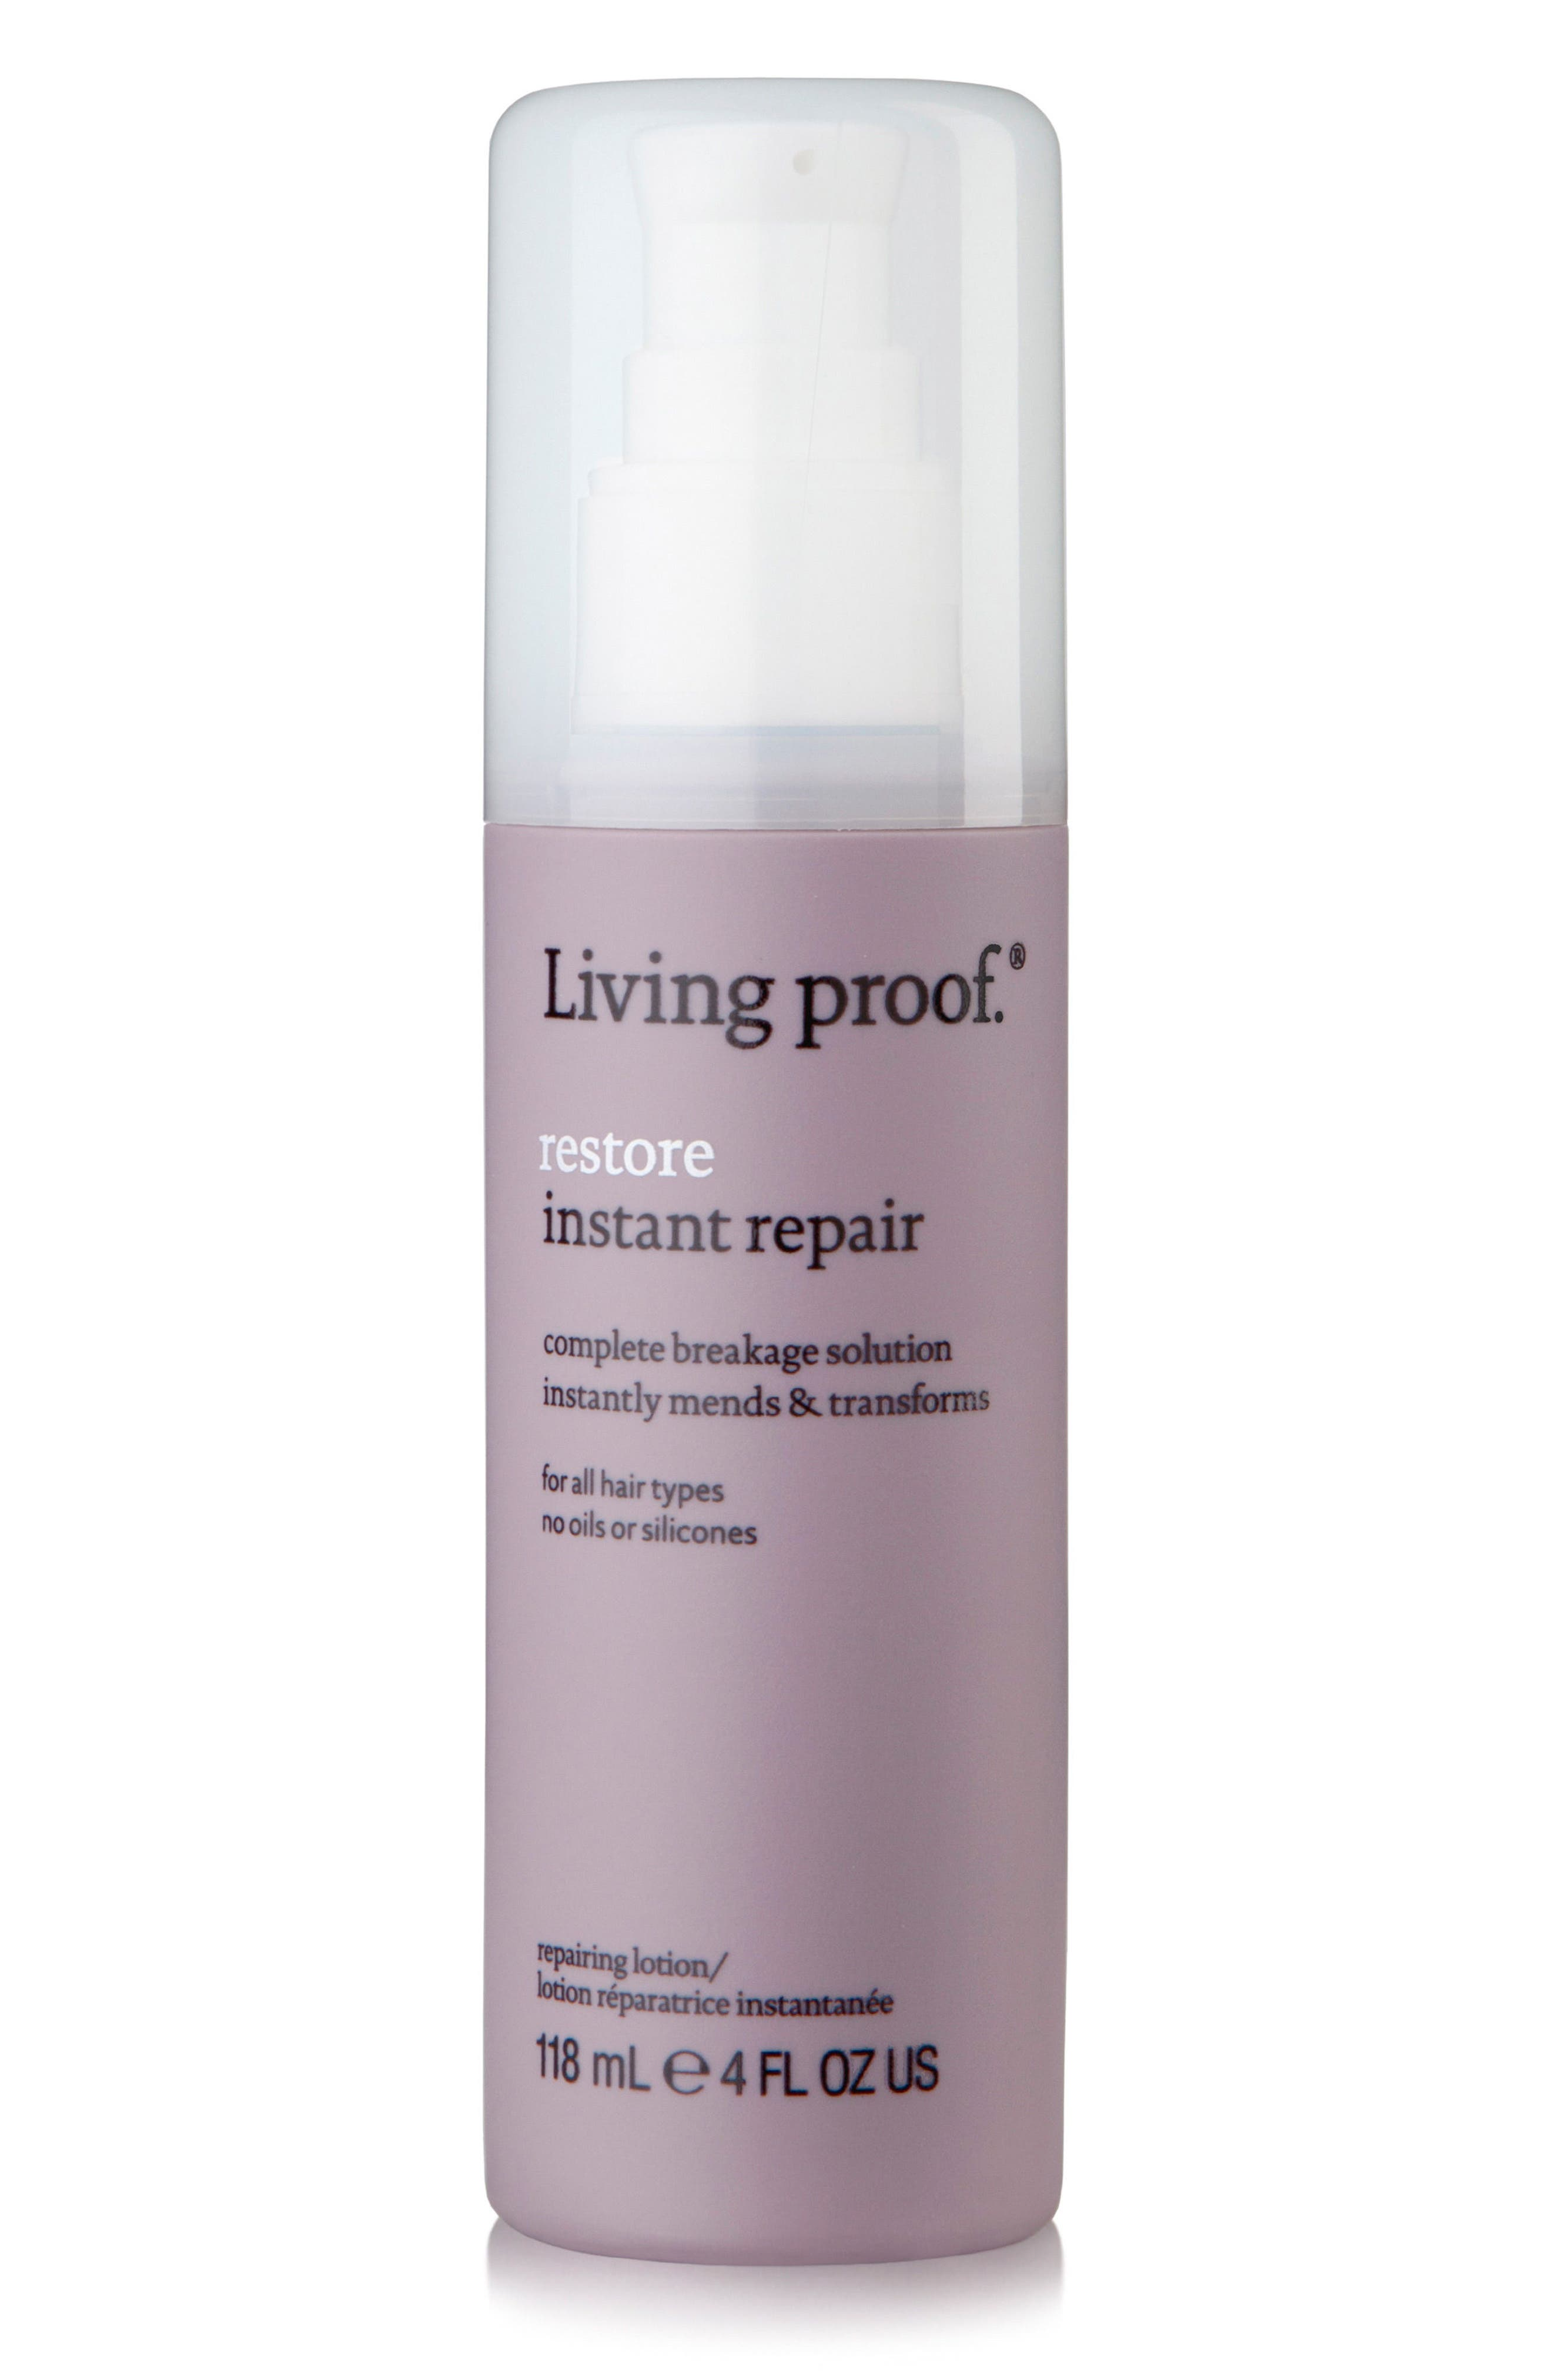 Living proof® Restore Instant Repair